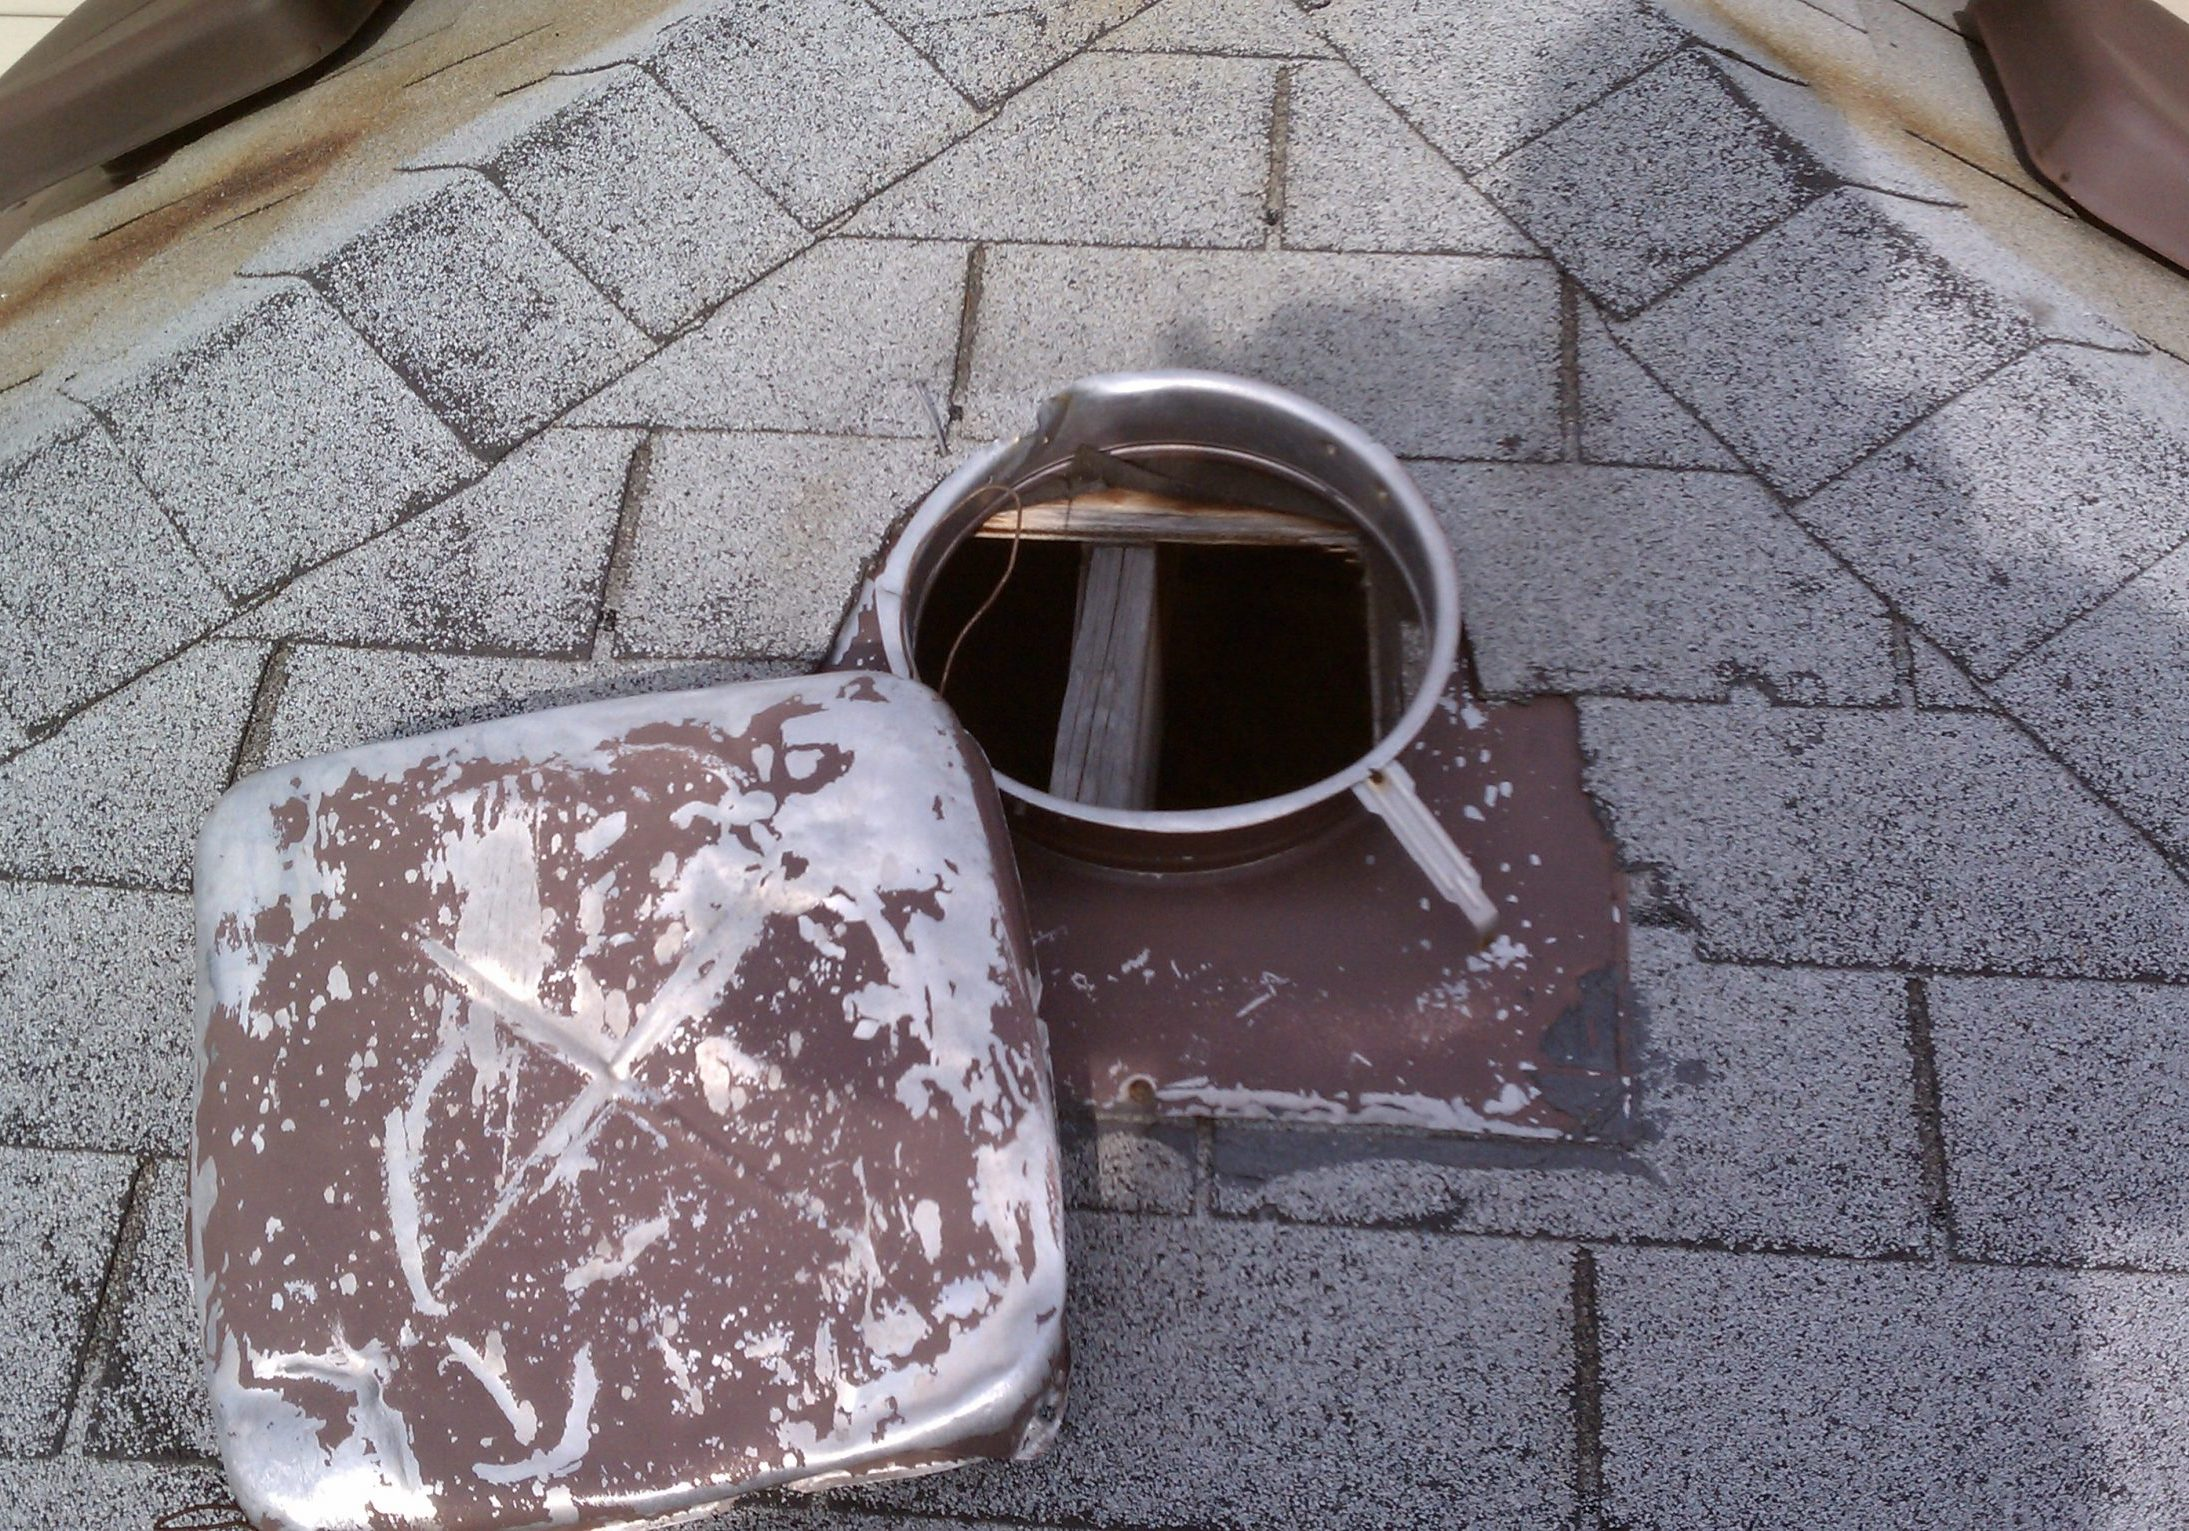 Raccoon Damage to a Roof Vent